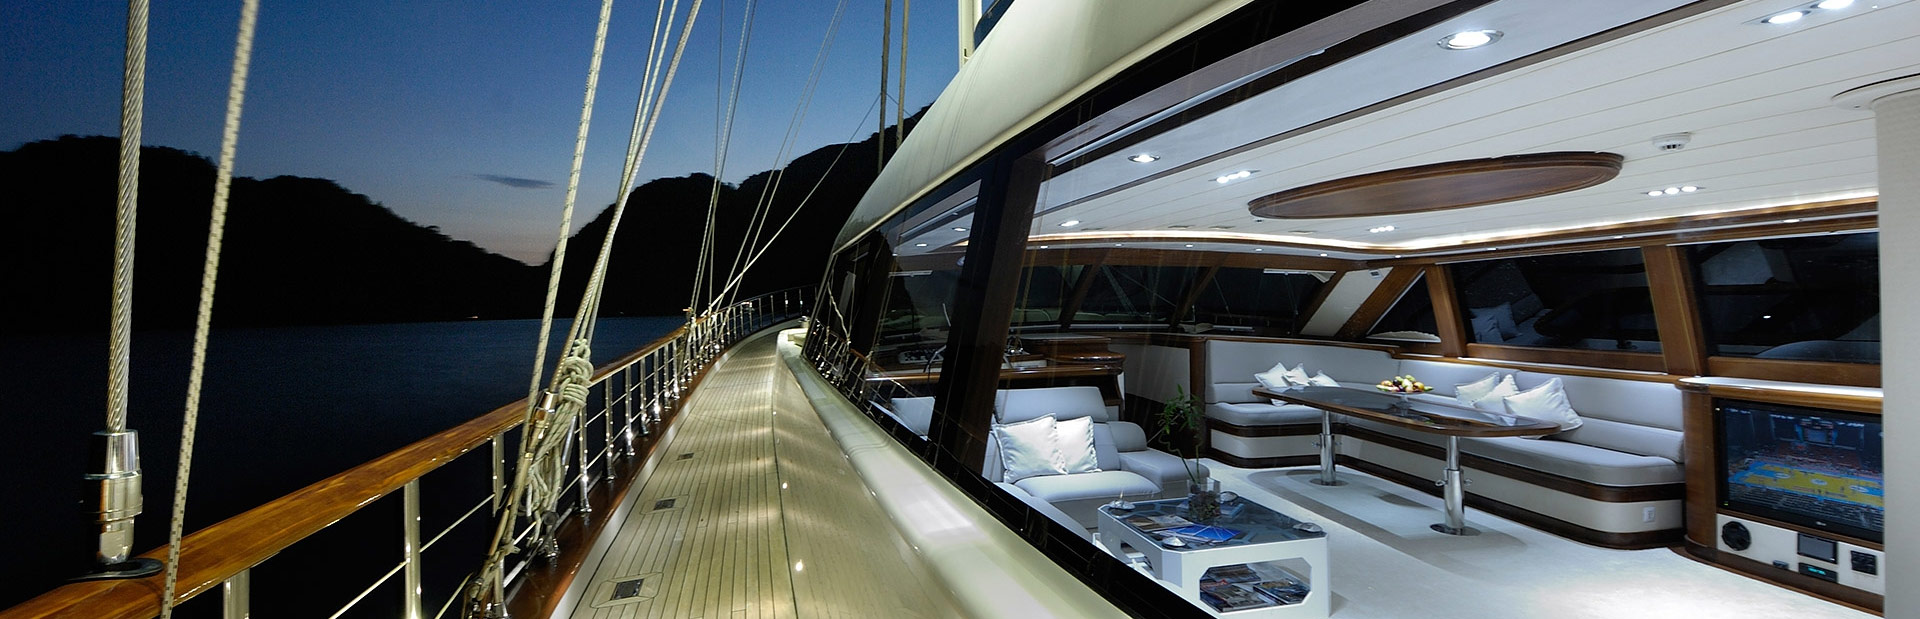 Gulet yacht Alessandro deck at night